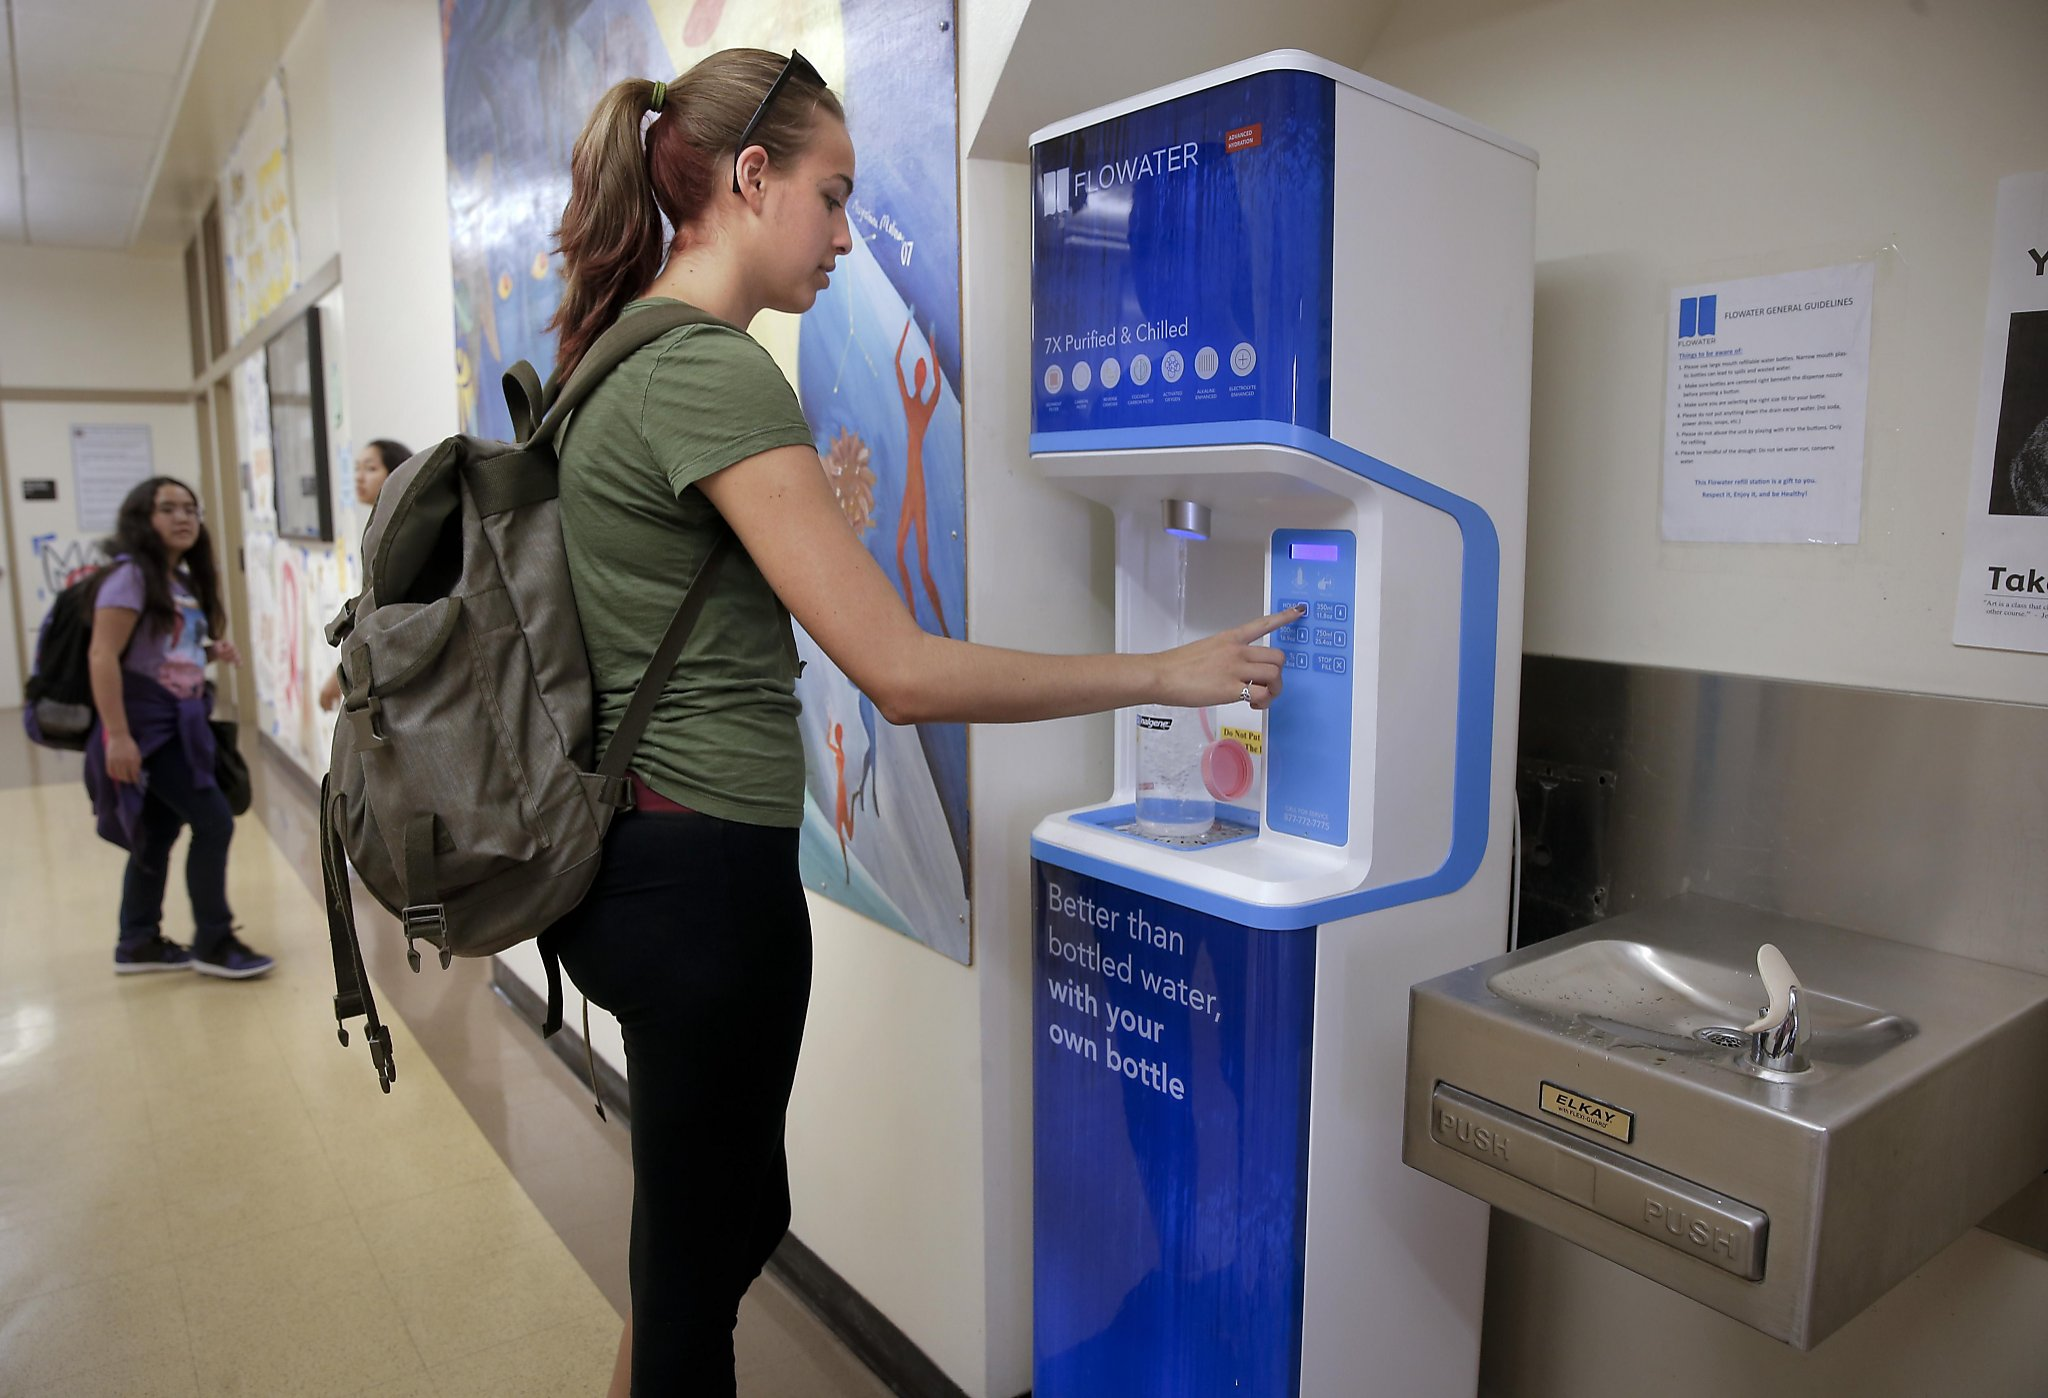 Schools buying water filters even though fountains are fine